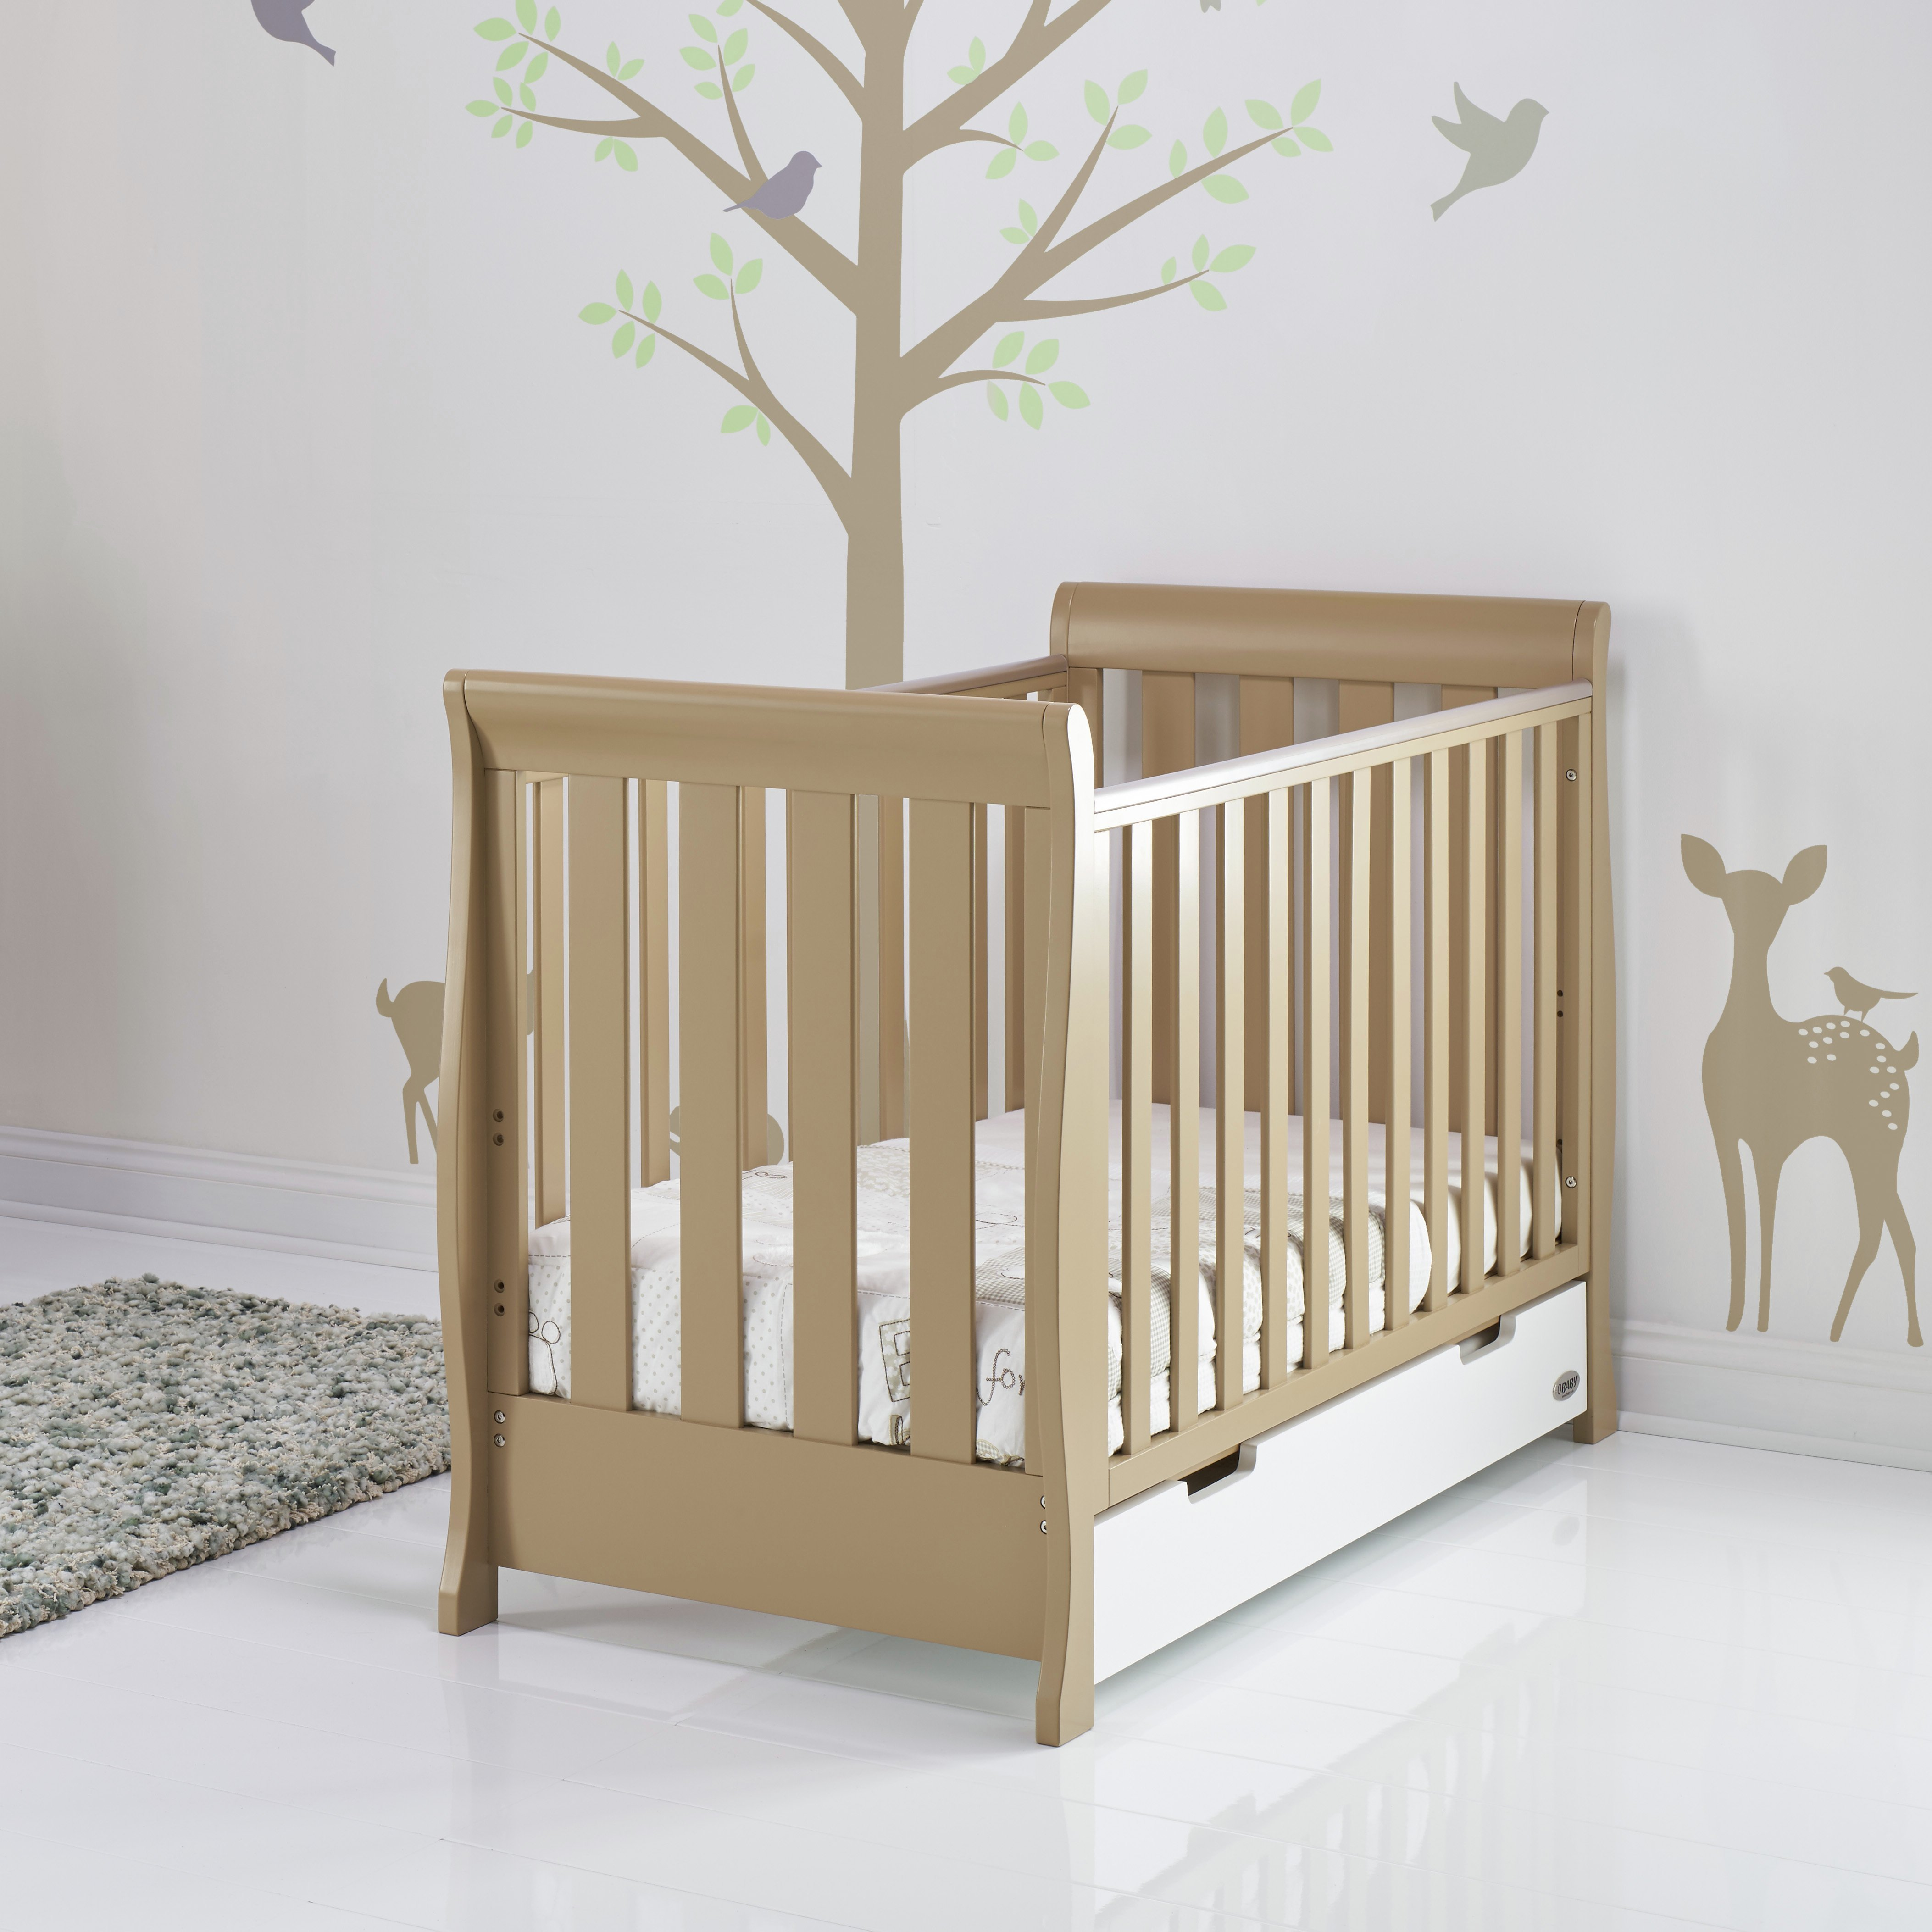 Image of Obaby Stamford Mini Retro Cot Bed - Iced Coffee with White